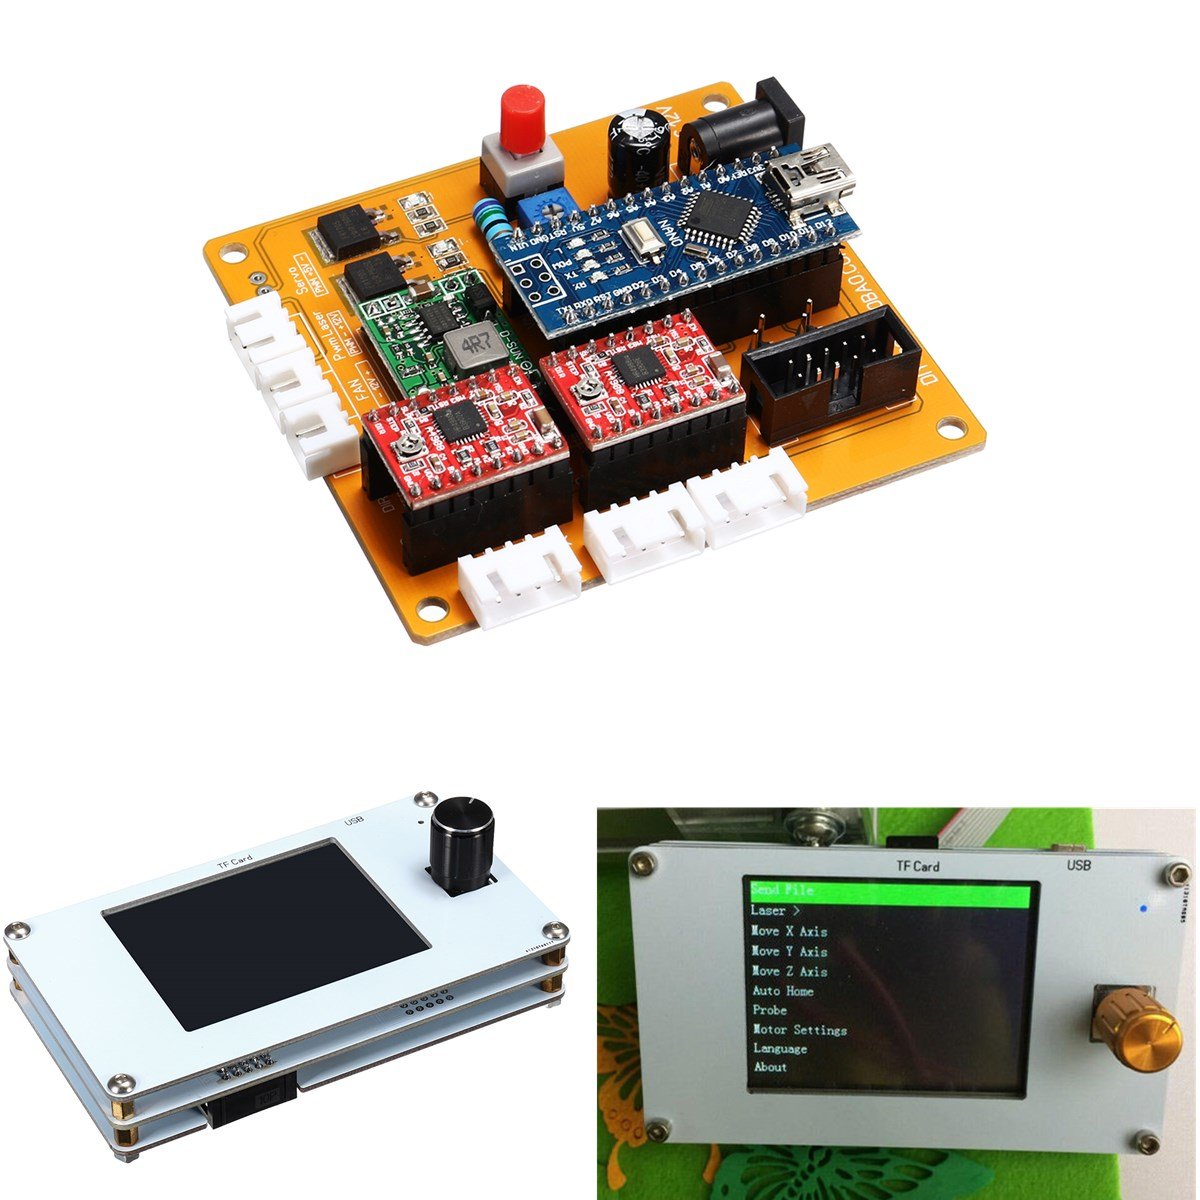 2 Axis Offline Control System Board with TFT LCD Panel for DIY CNC Laser Engraving Machine GRBL